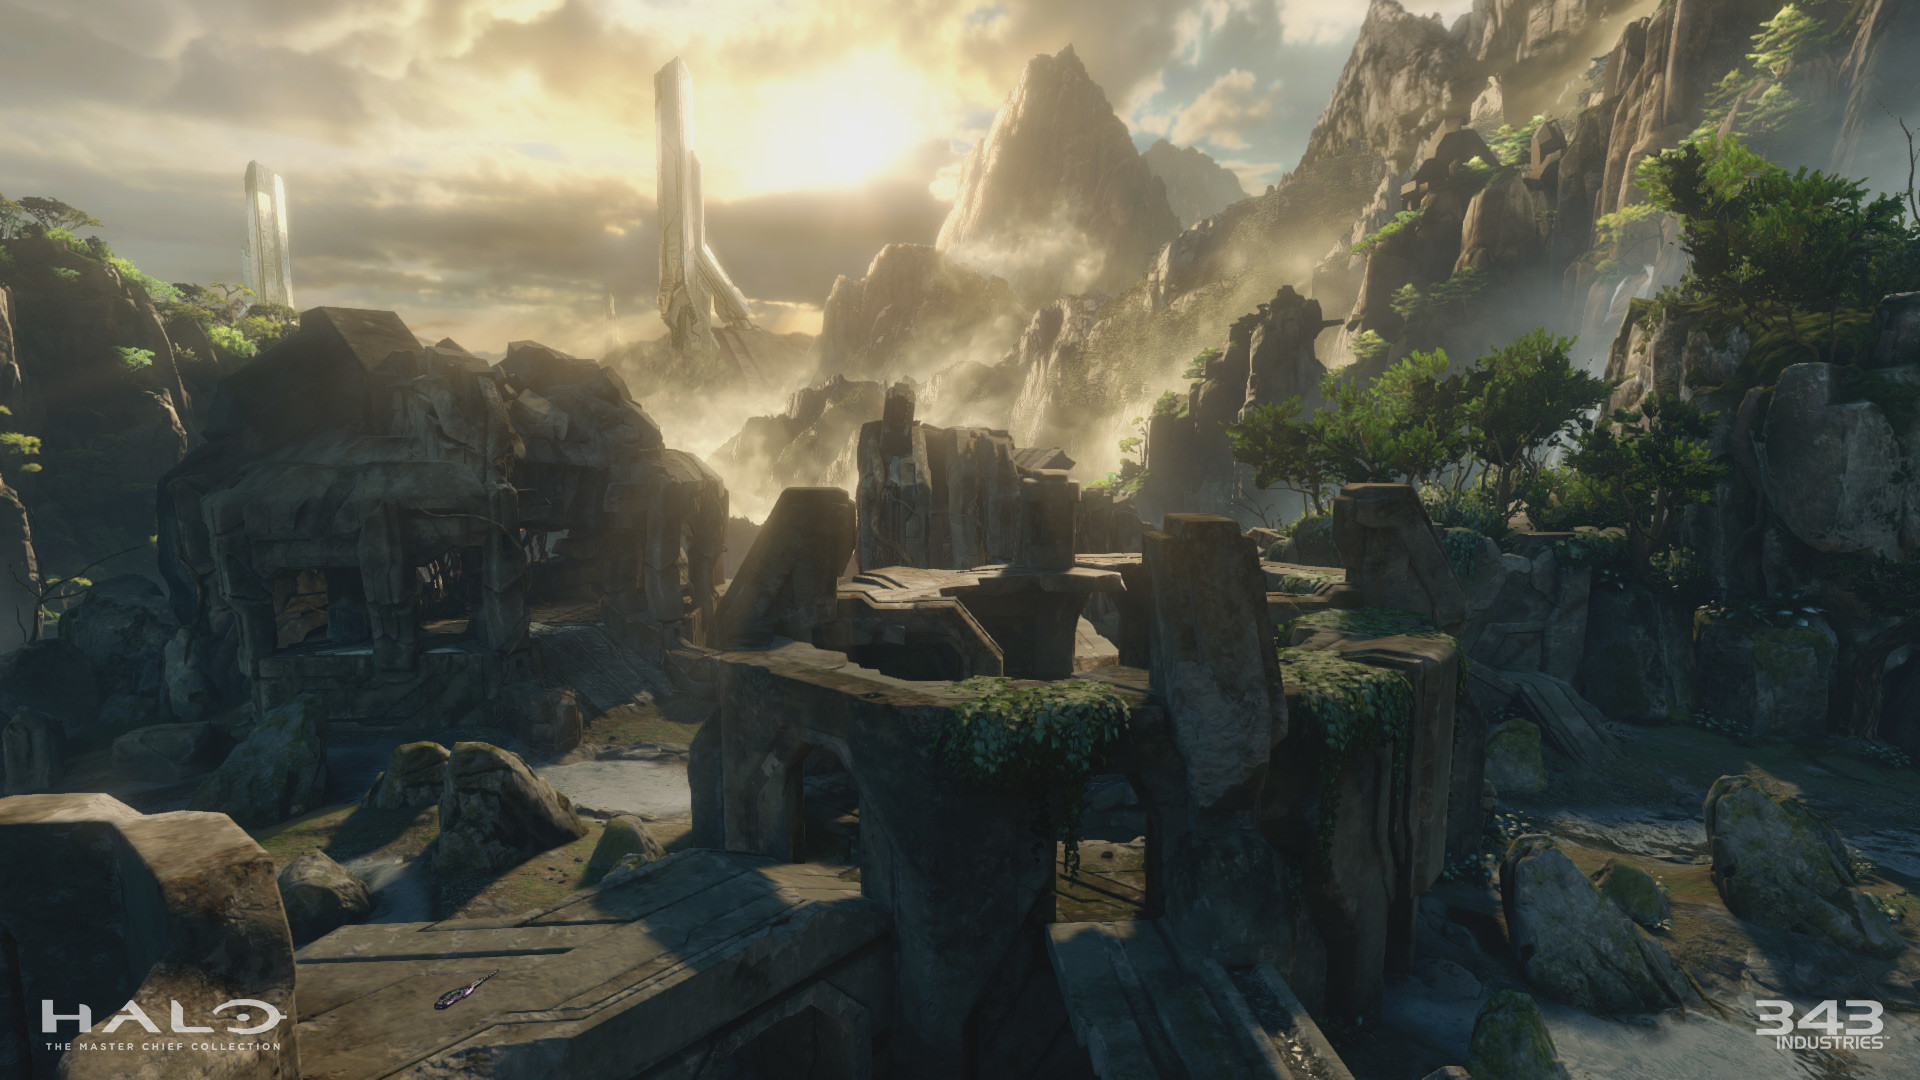 UPDATE: Here are 10 high-resolution screens of Sanctuary in Halo 2  Anniversary: